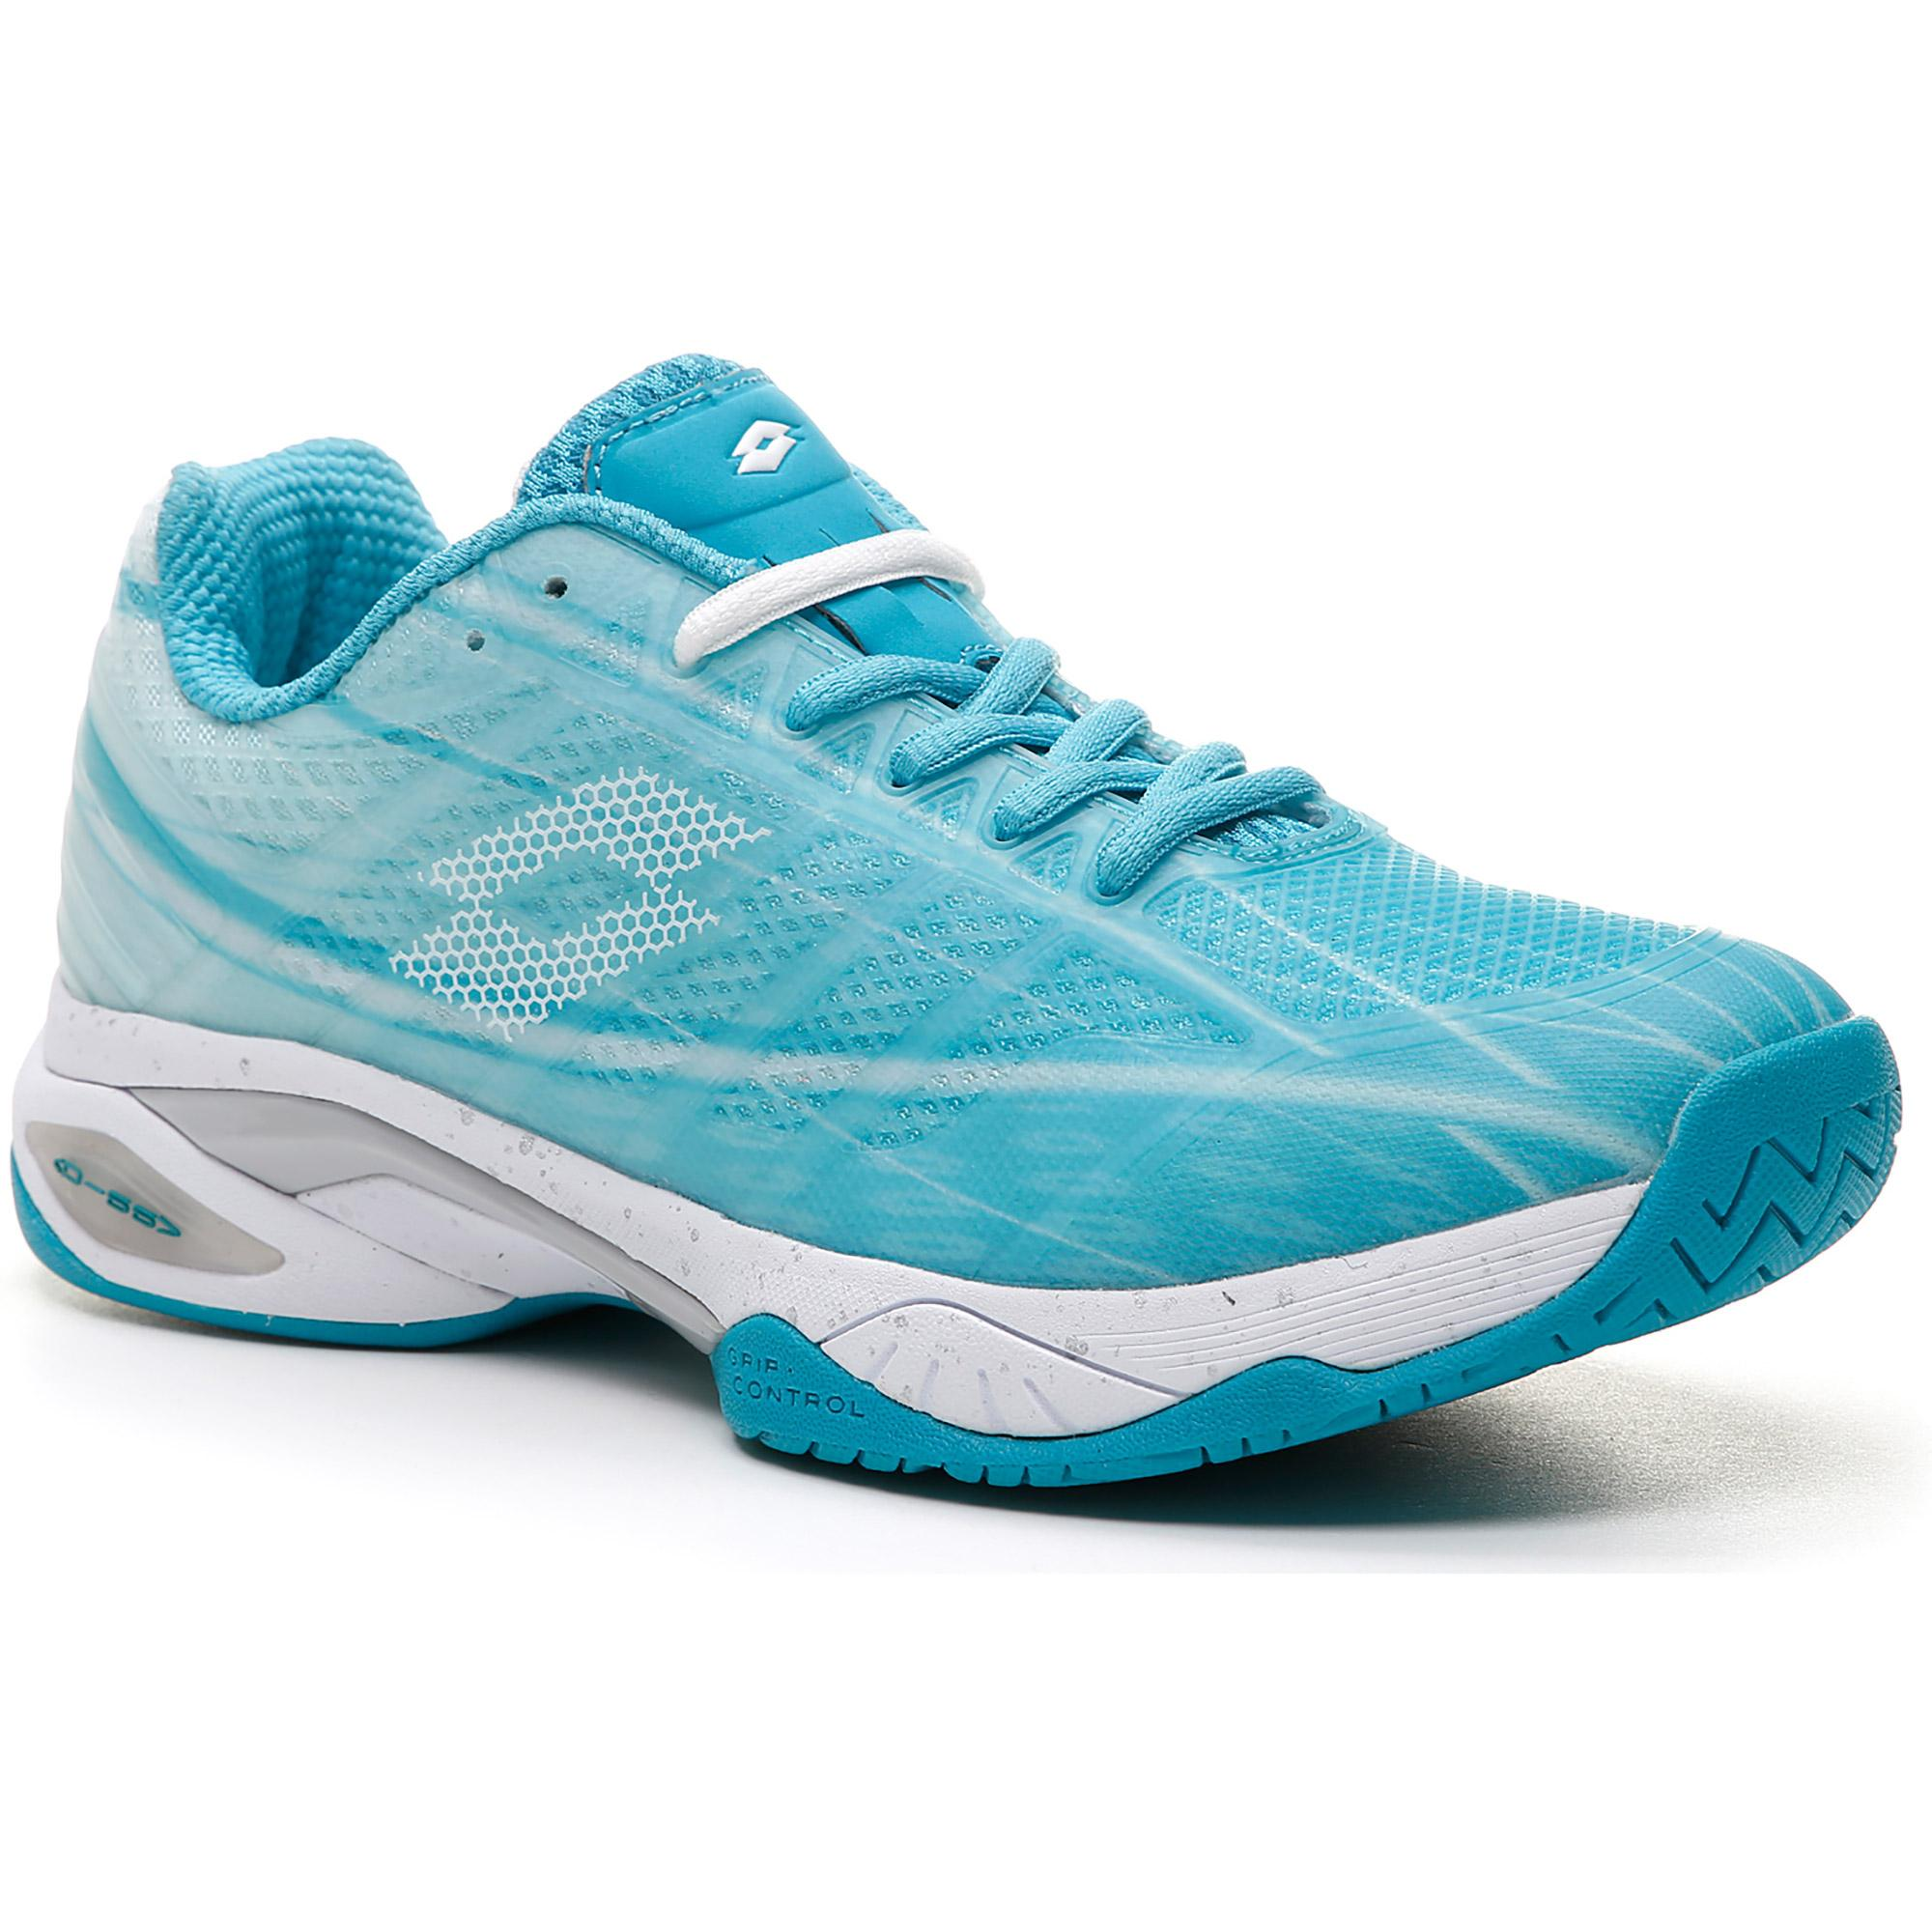 Lotto Womens Mirage 300 Tennis Shoes